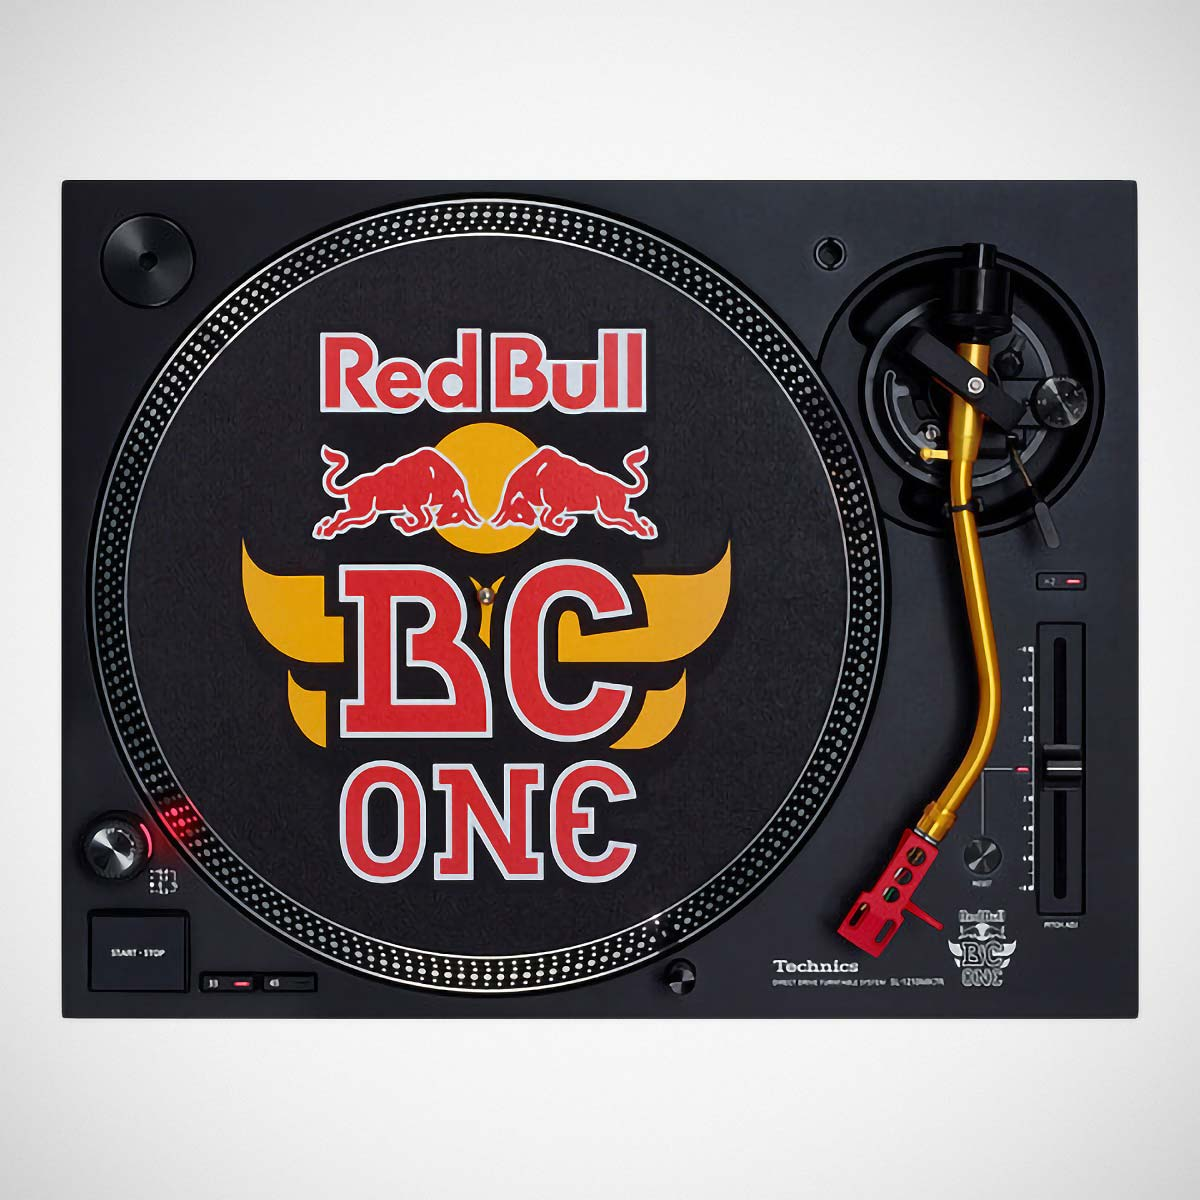 Technics Red Bull BC One Limited Edition